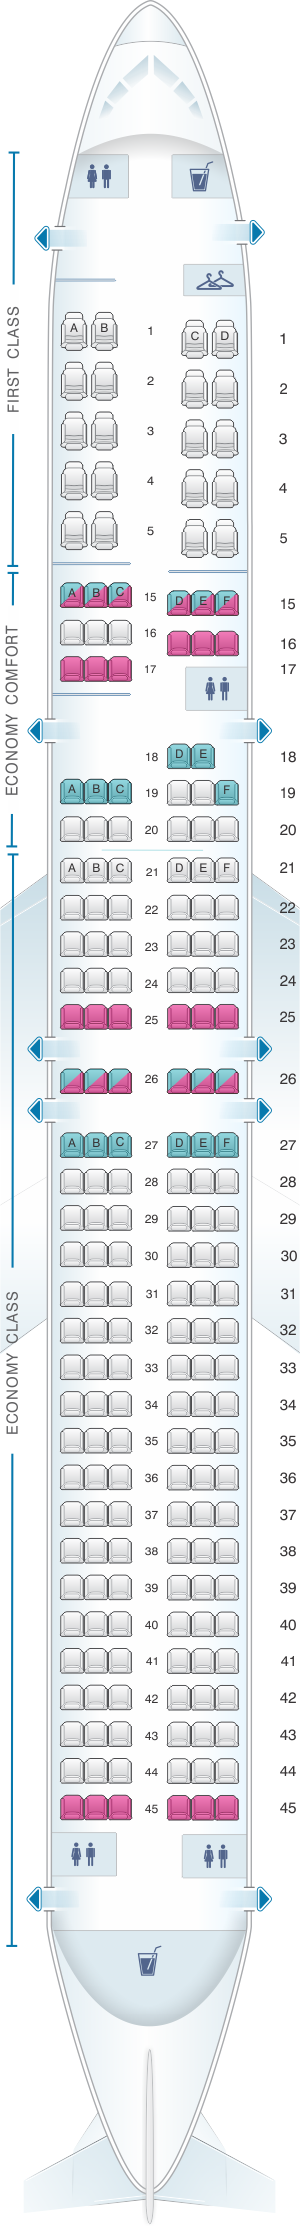 Seat map for Delta Air Lines Boeing B757 200 (75H)